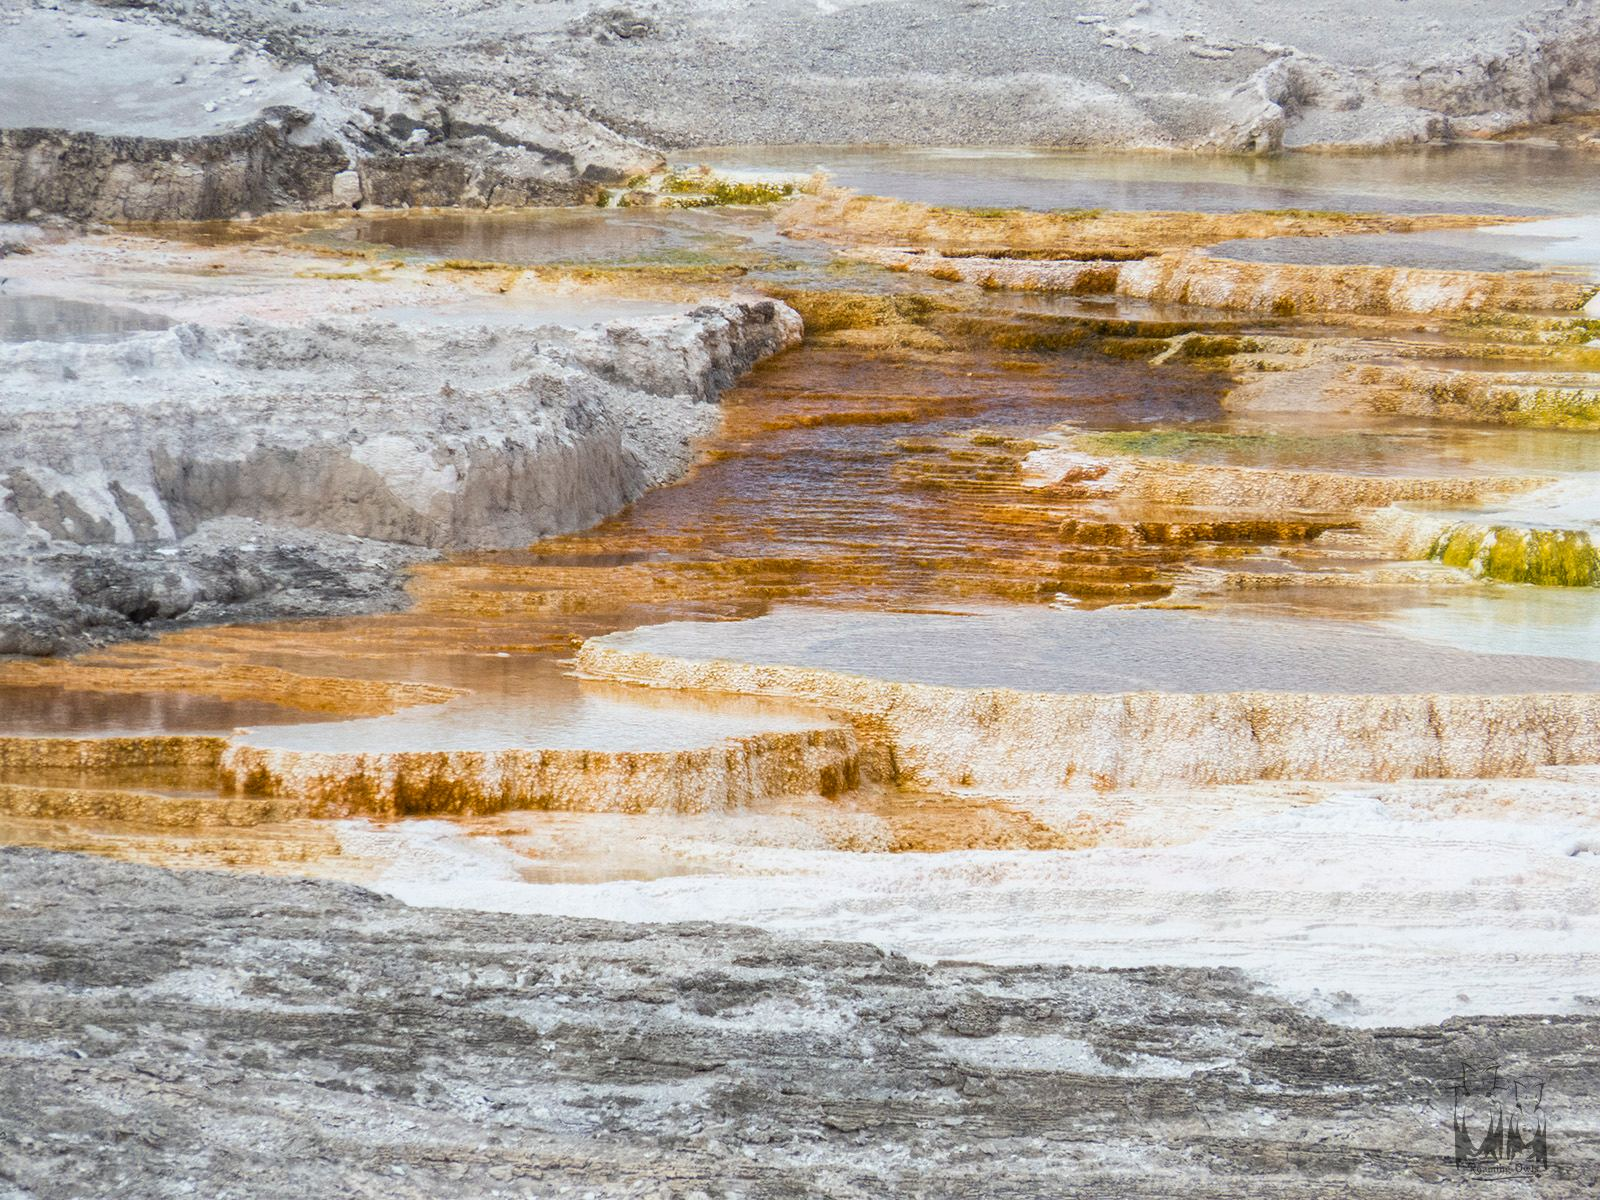 Yellowstone national park, Hot springs , orange bacteria